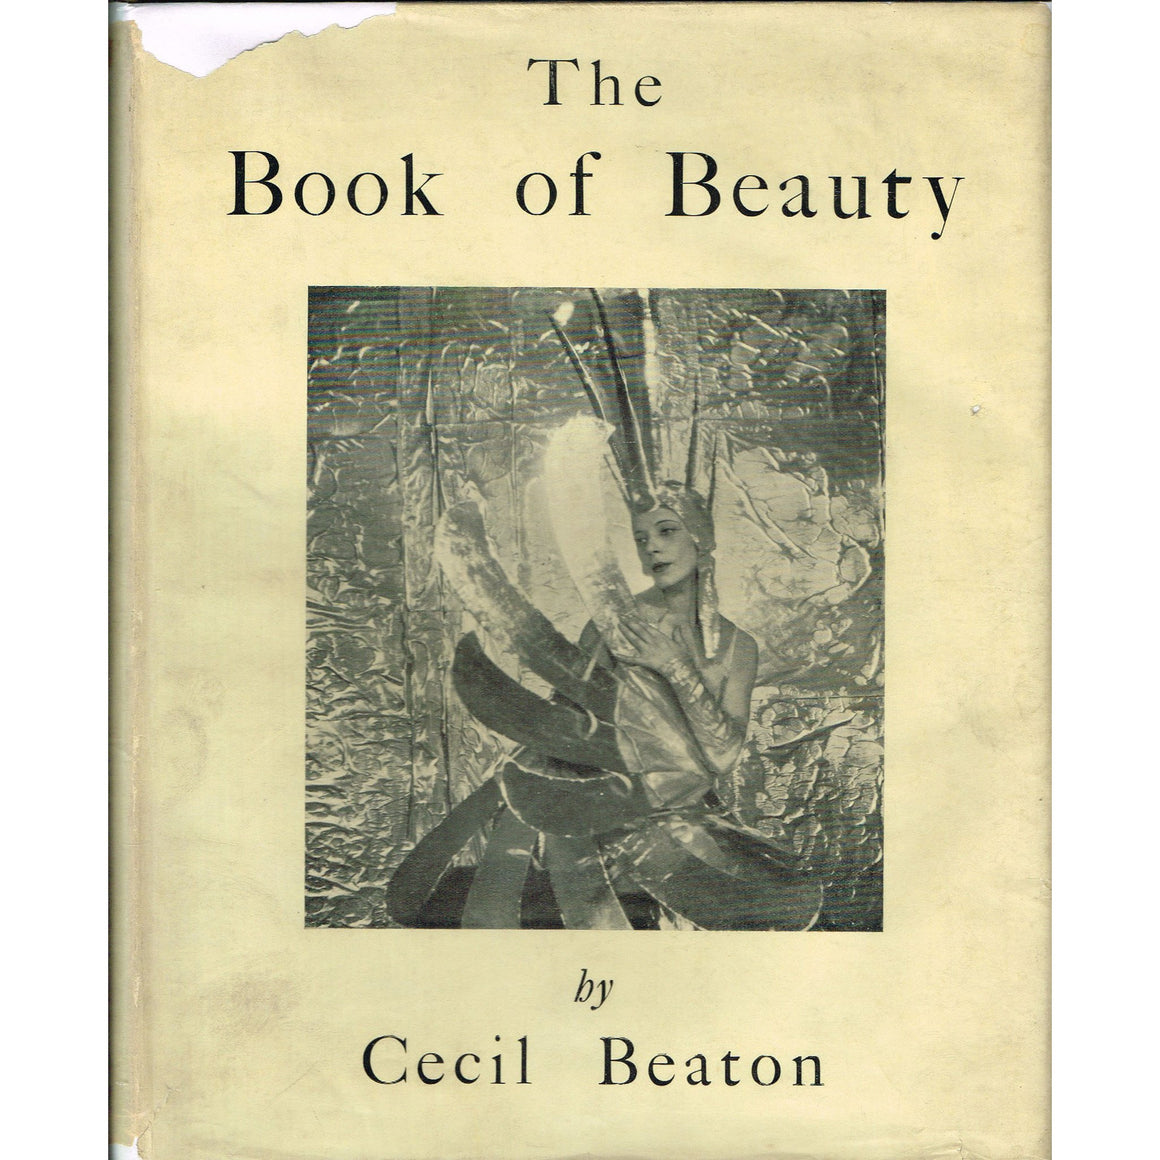 The Book of Beauty